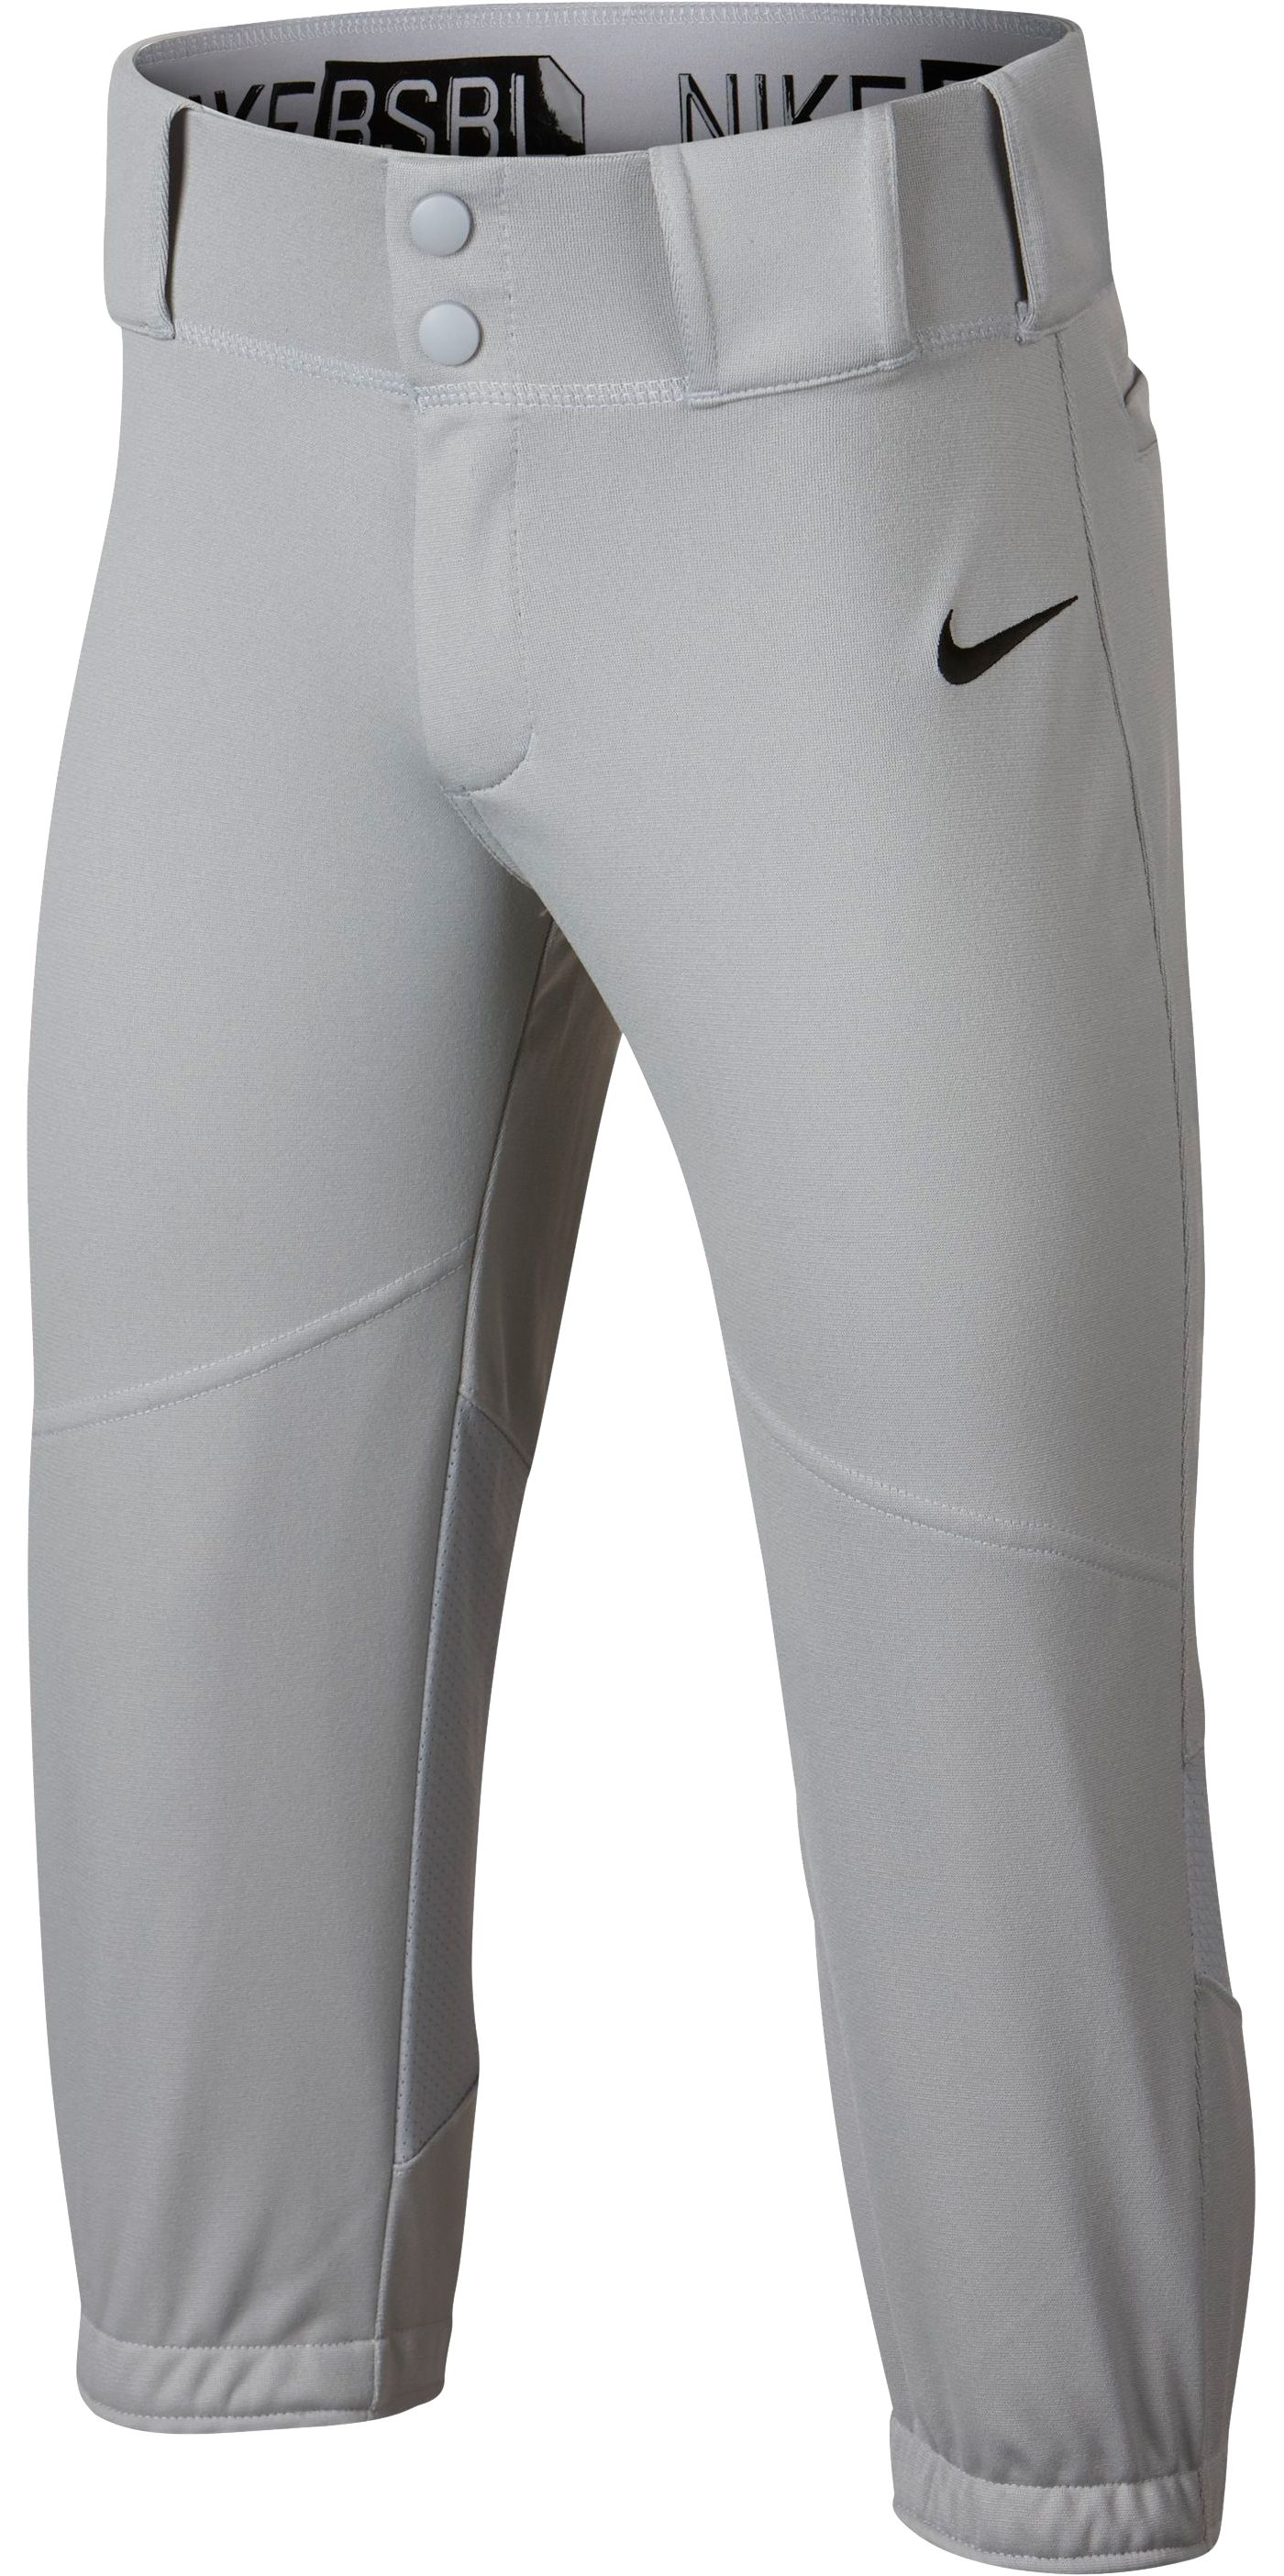 Nike Men's Pro Vapor High Baseball Pants